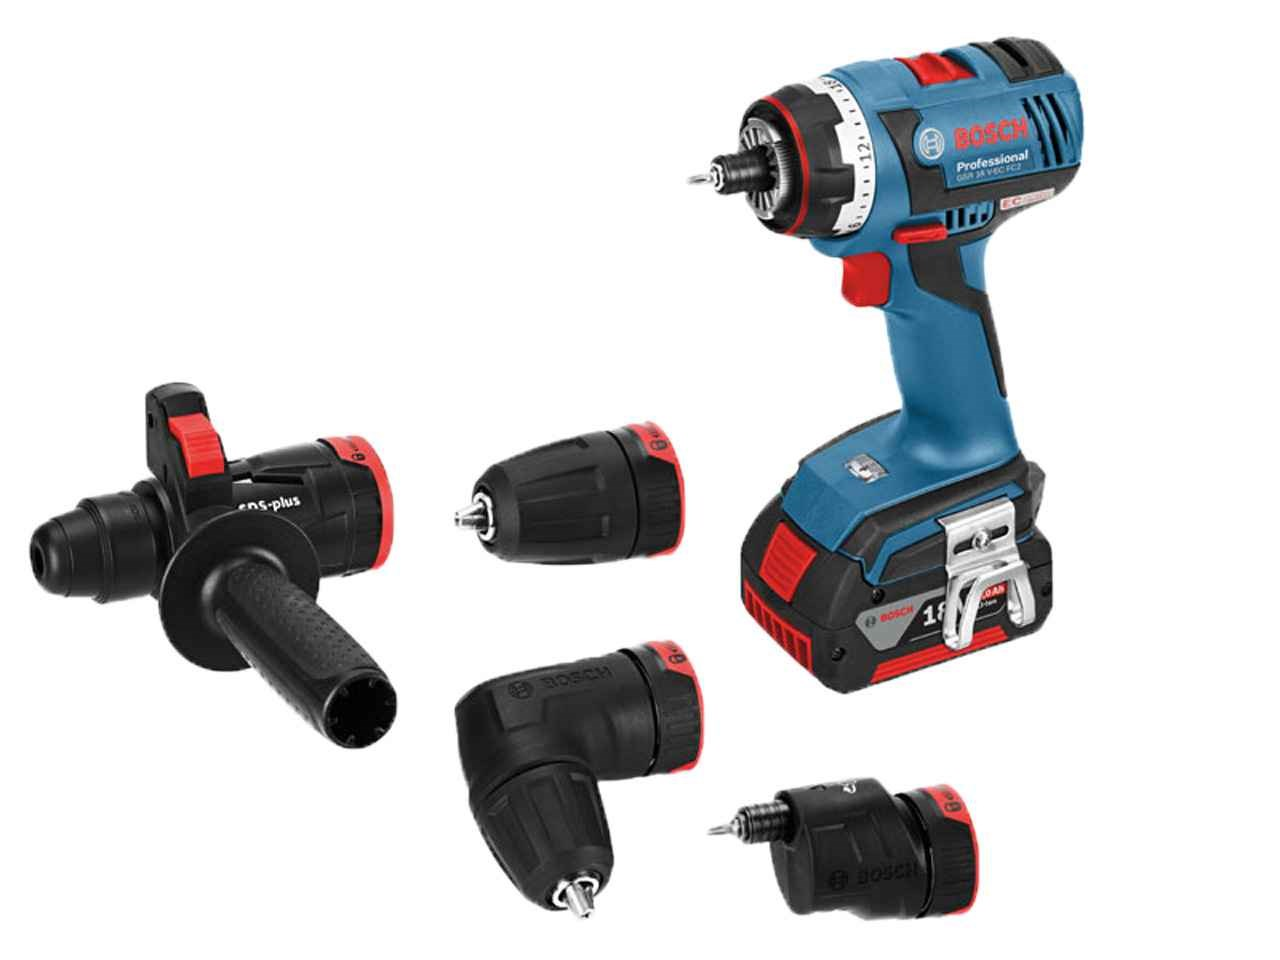 bosch gsr 18 v ec fc2 18v 2x5ah li ion drill driver l boxx kit. Black Bedroom Furniture Sets. Home Design Ideas